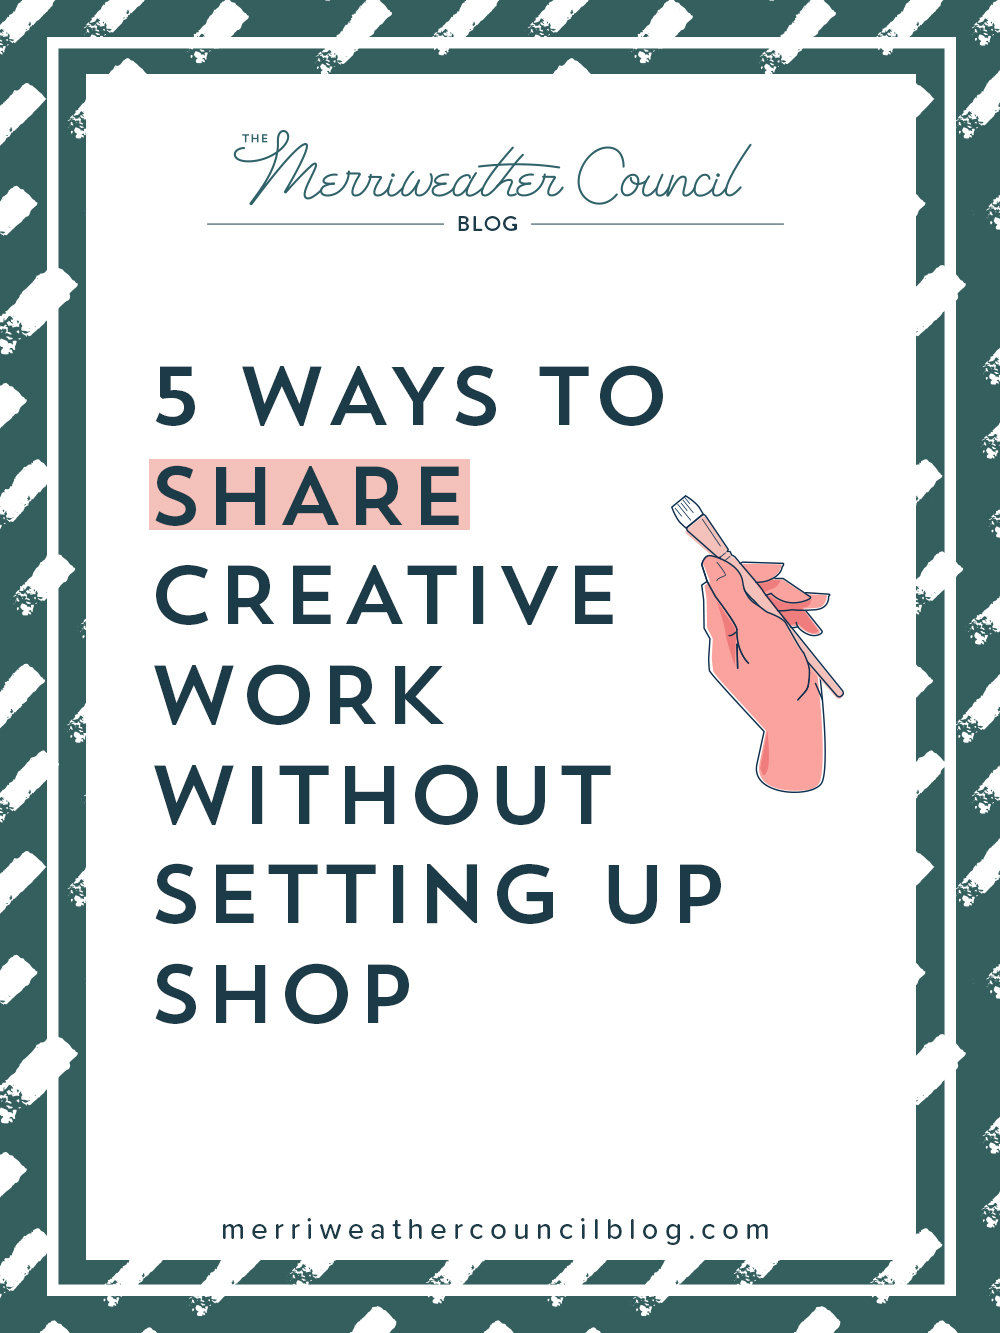 5 ways to share creative work without setting up shop to sell it | the merriweather council Blog